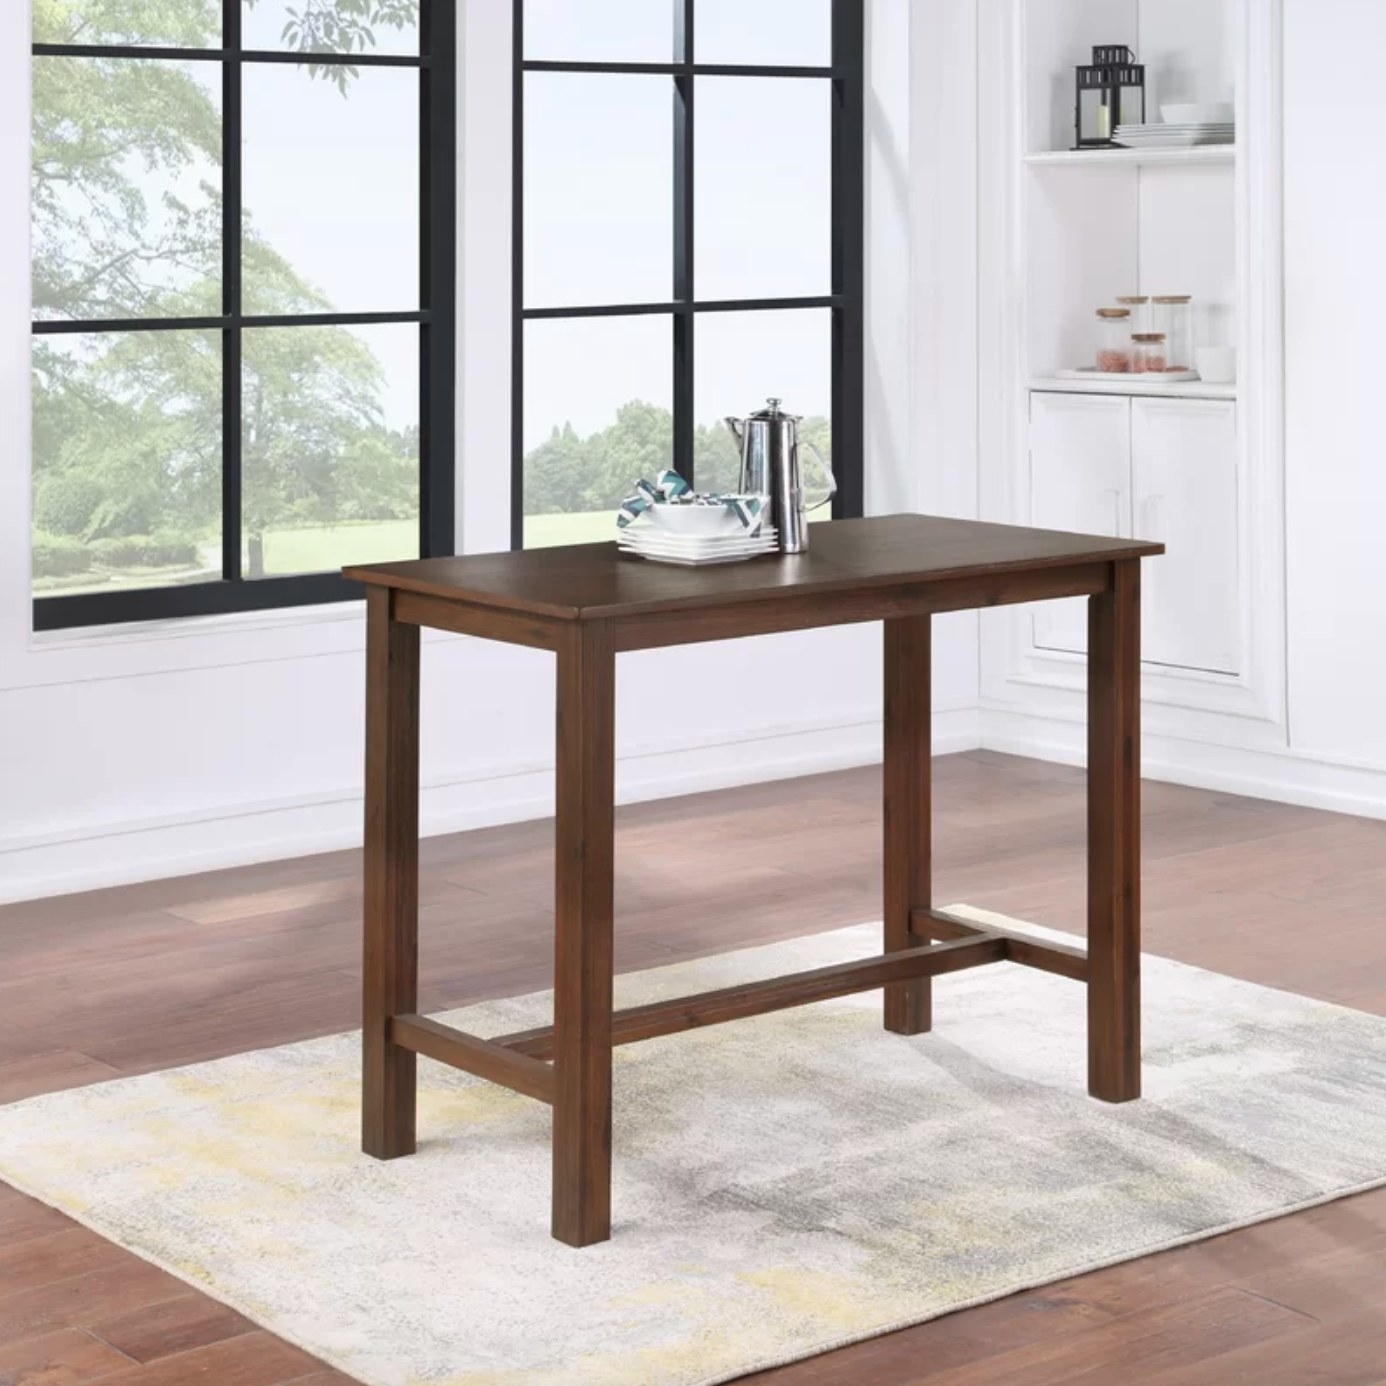 The counter height table in Chestnut Wire-Brush